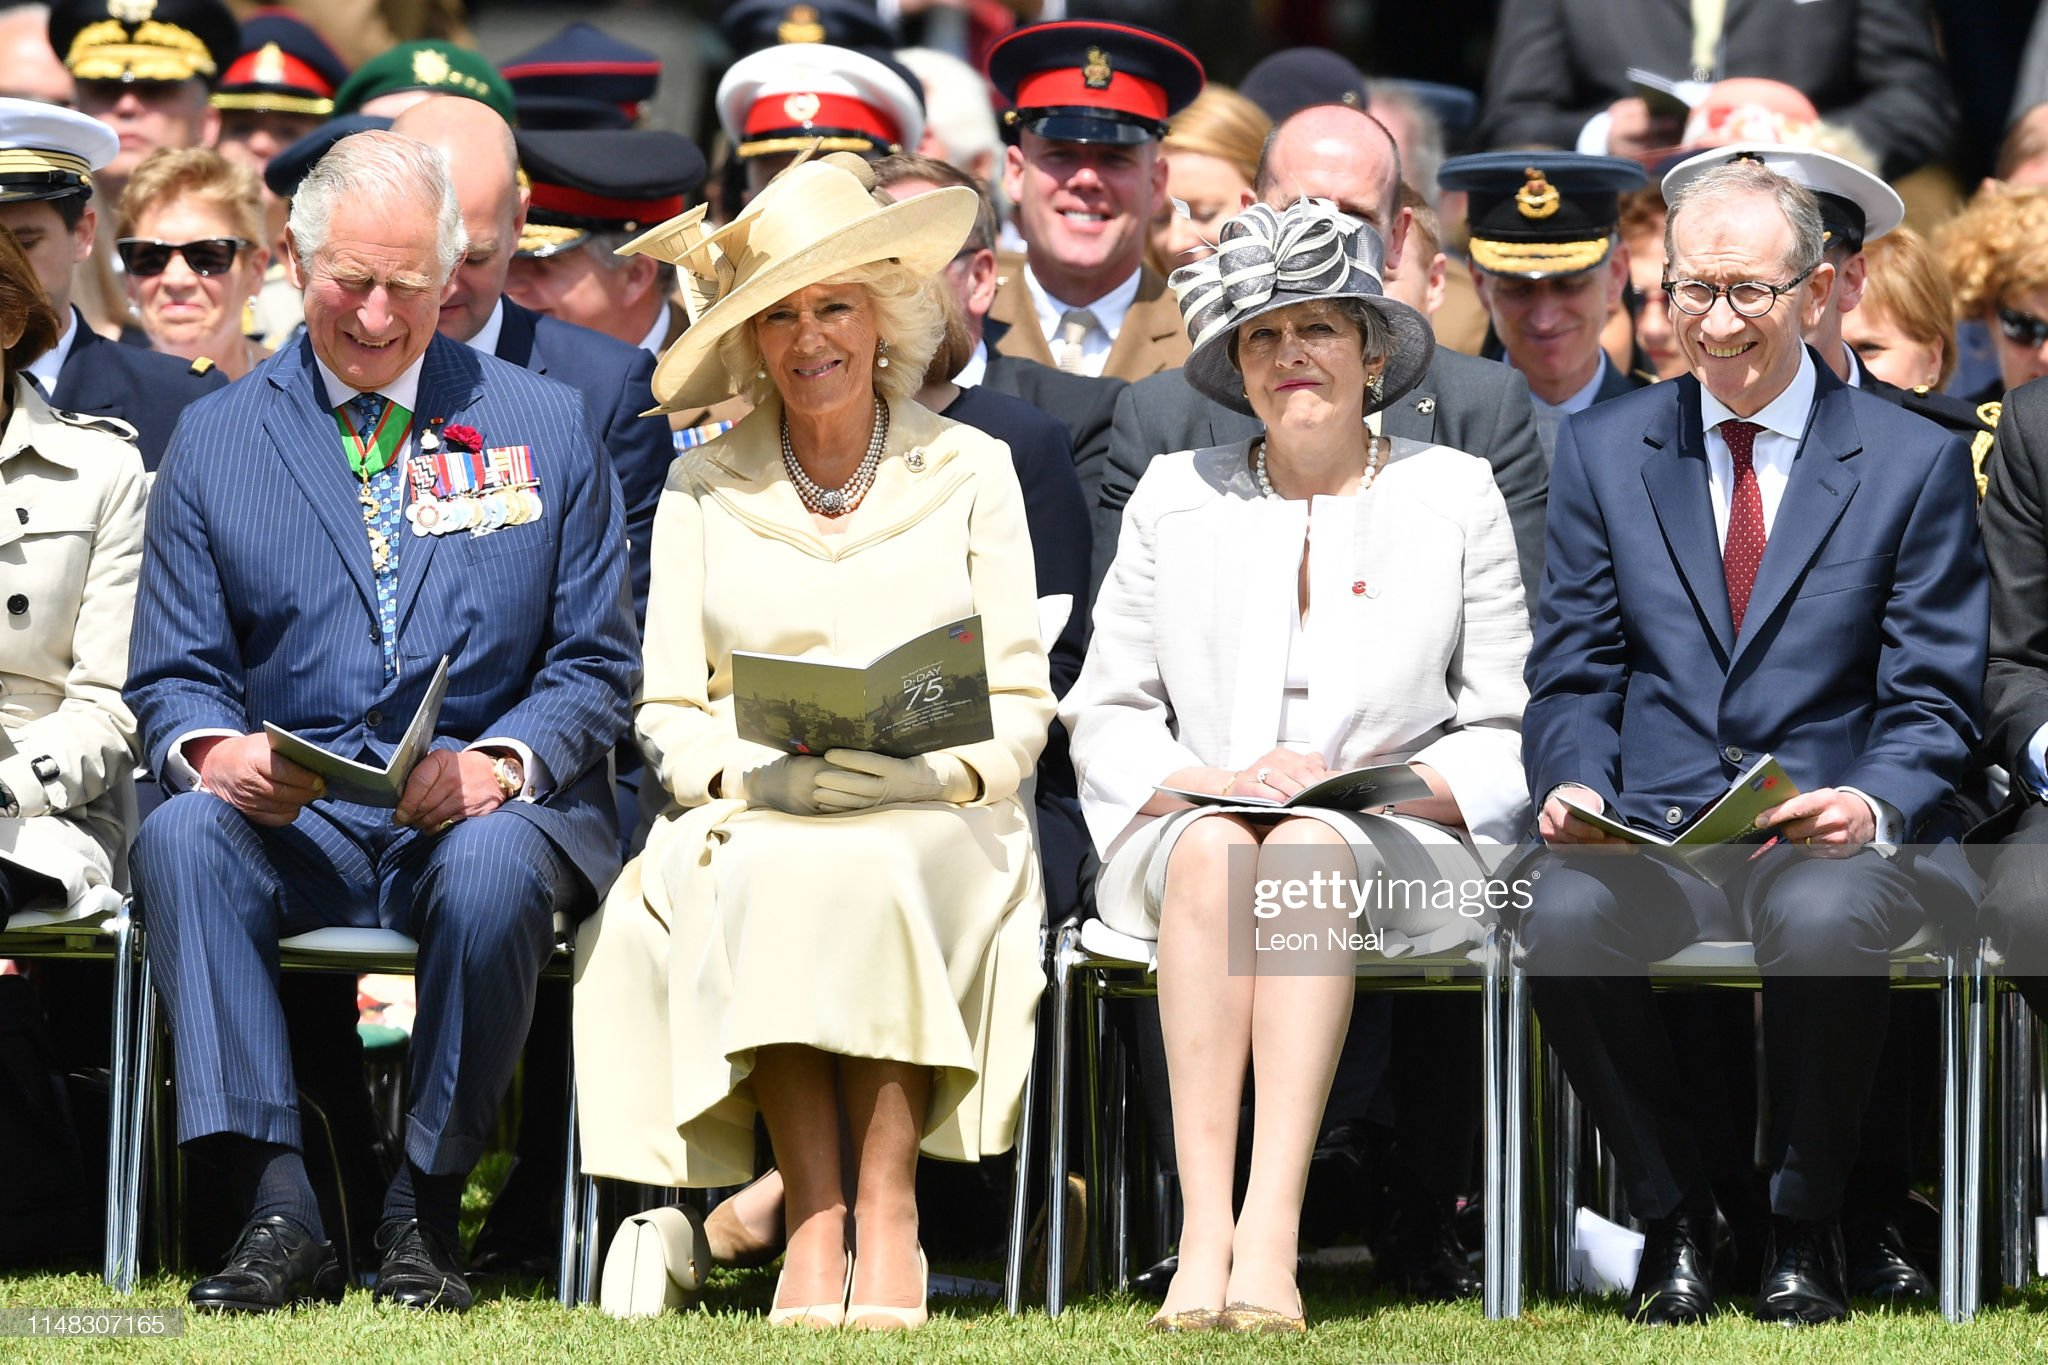 prince-charles-prince-of-wales-camilla-duchess-of-cornwall-prime-picture-id1148307165